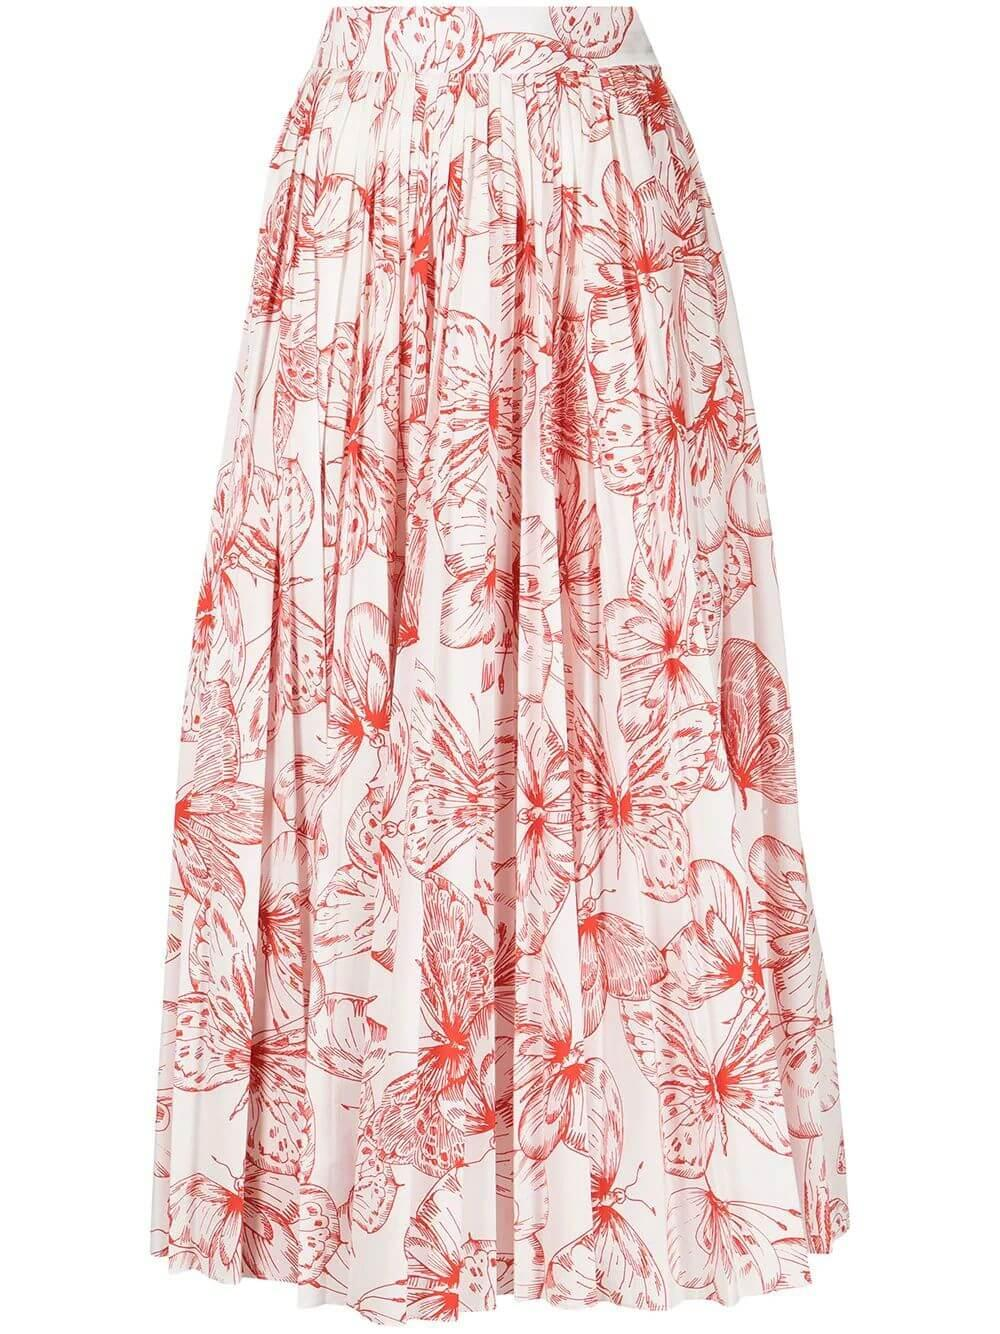 Butterfly Print Pleated Skirt